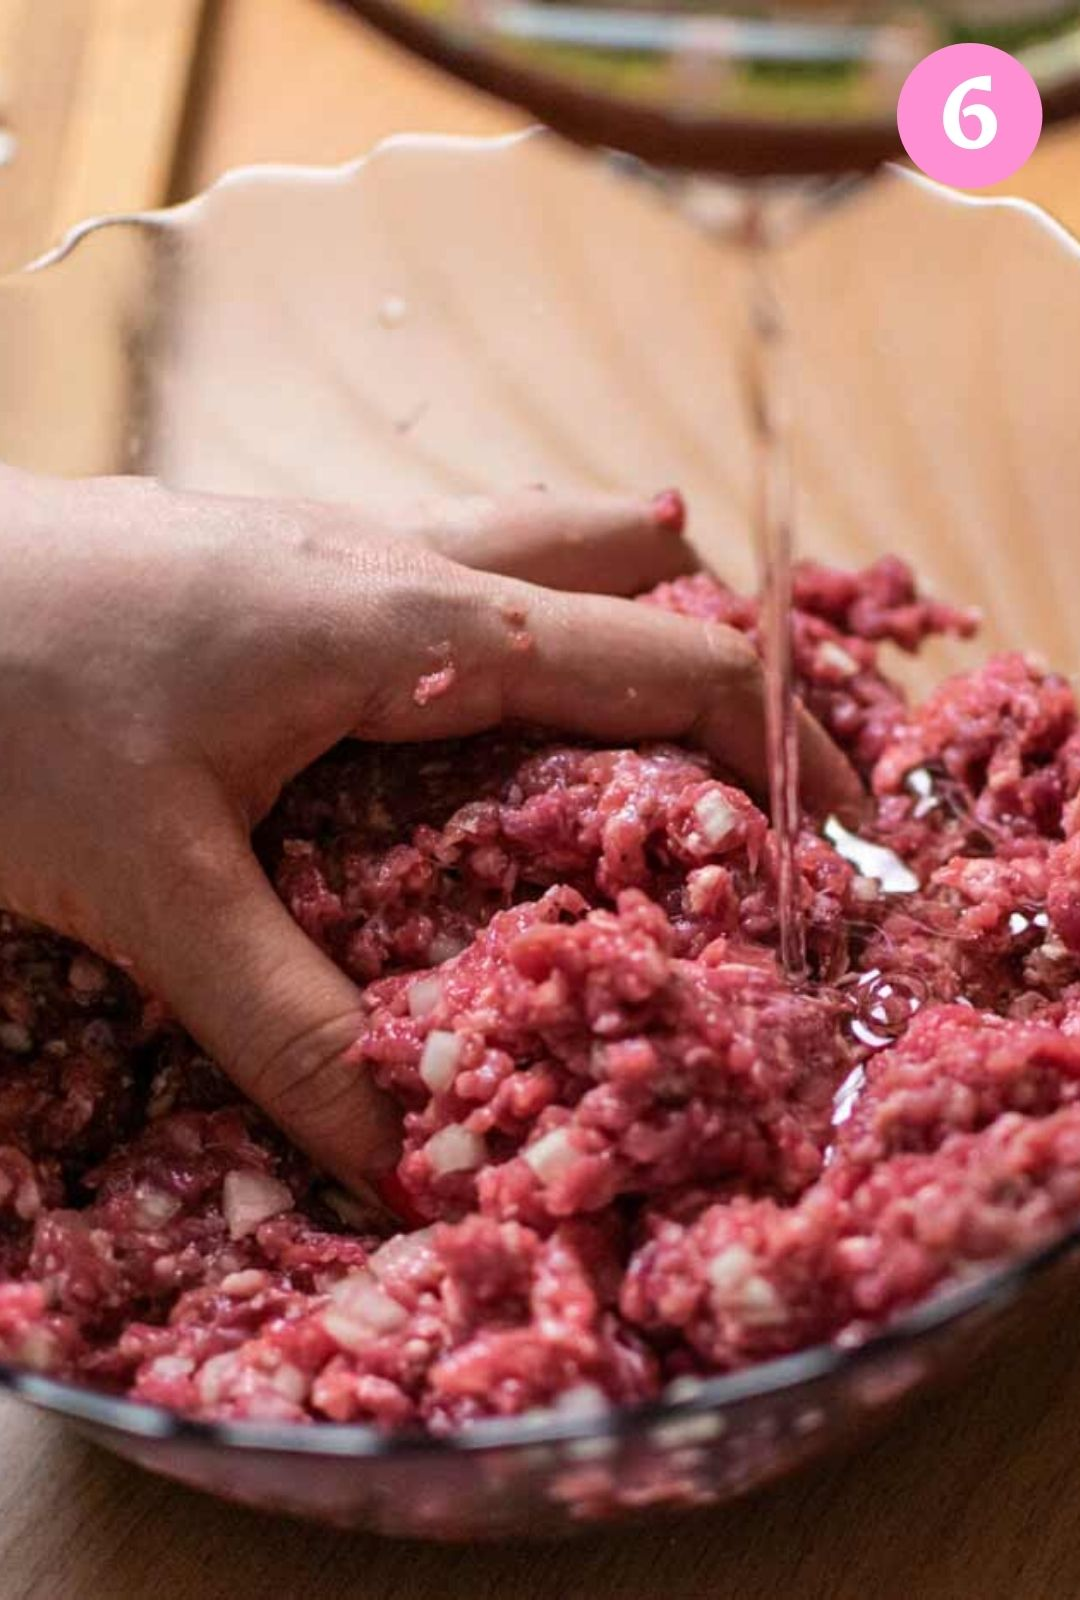 Mixing the ground beef with vegetable oil and spices